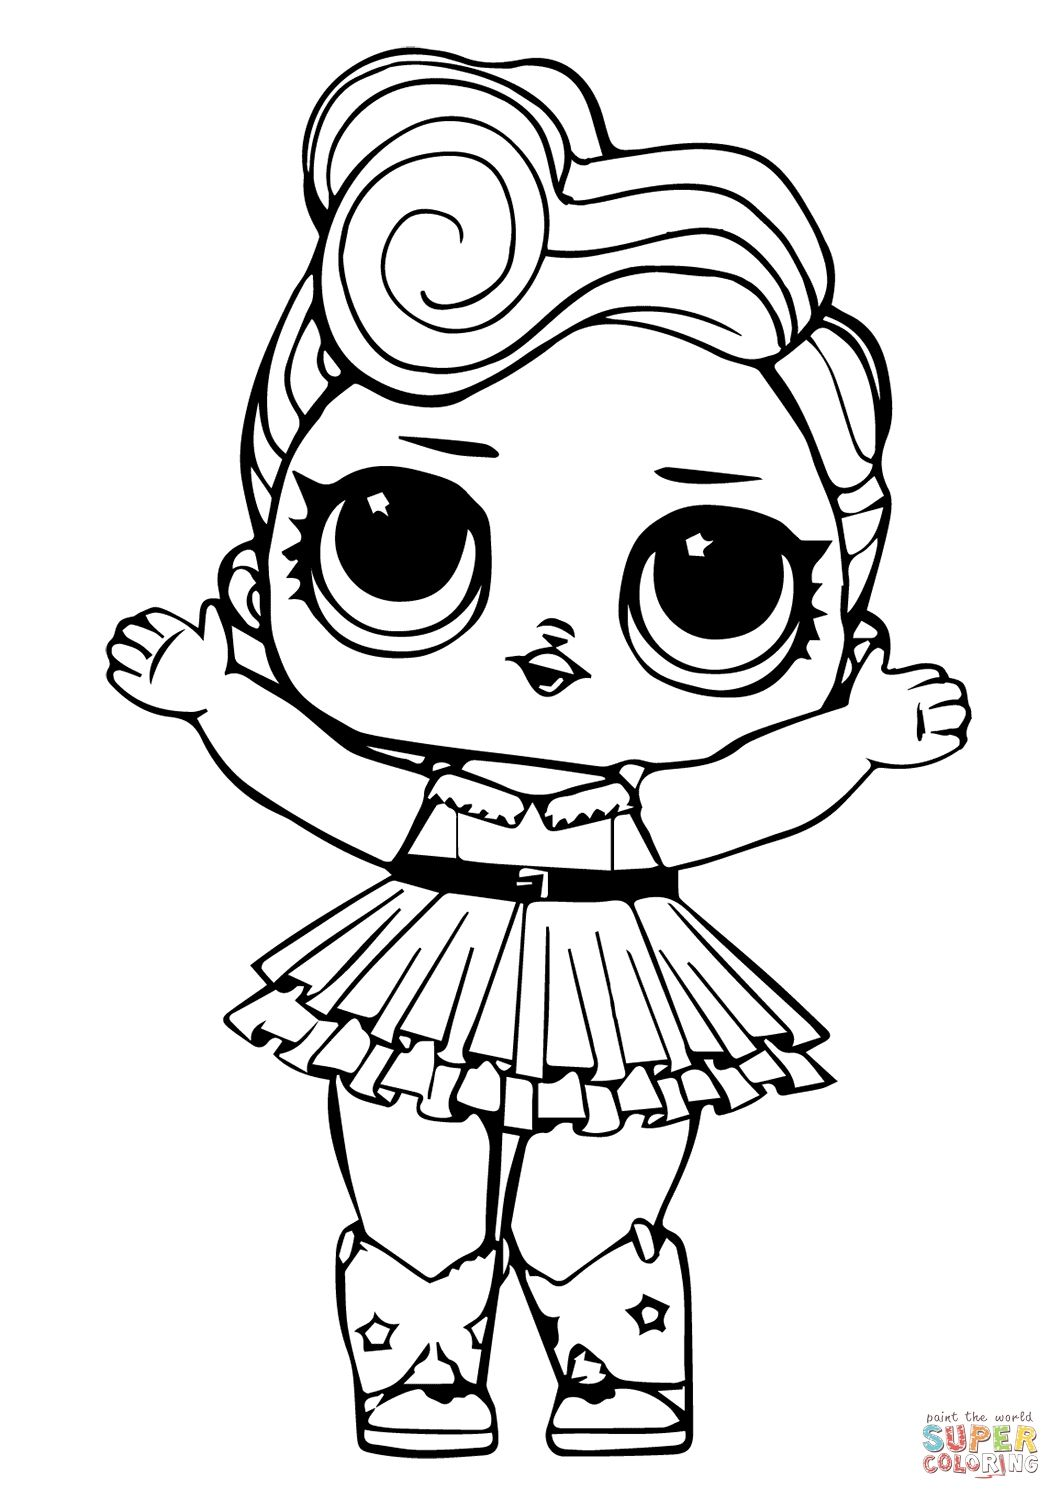 Lol Dolls Series 5 Coloring Pages Lol Dolls Series 5 Coloring Pages Animal Coloring Pages Unicorn Coloring Pages Princess Coloring Pages